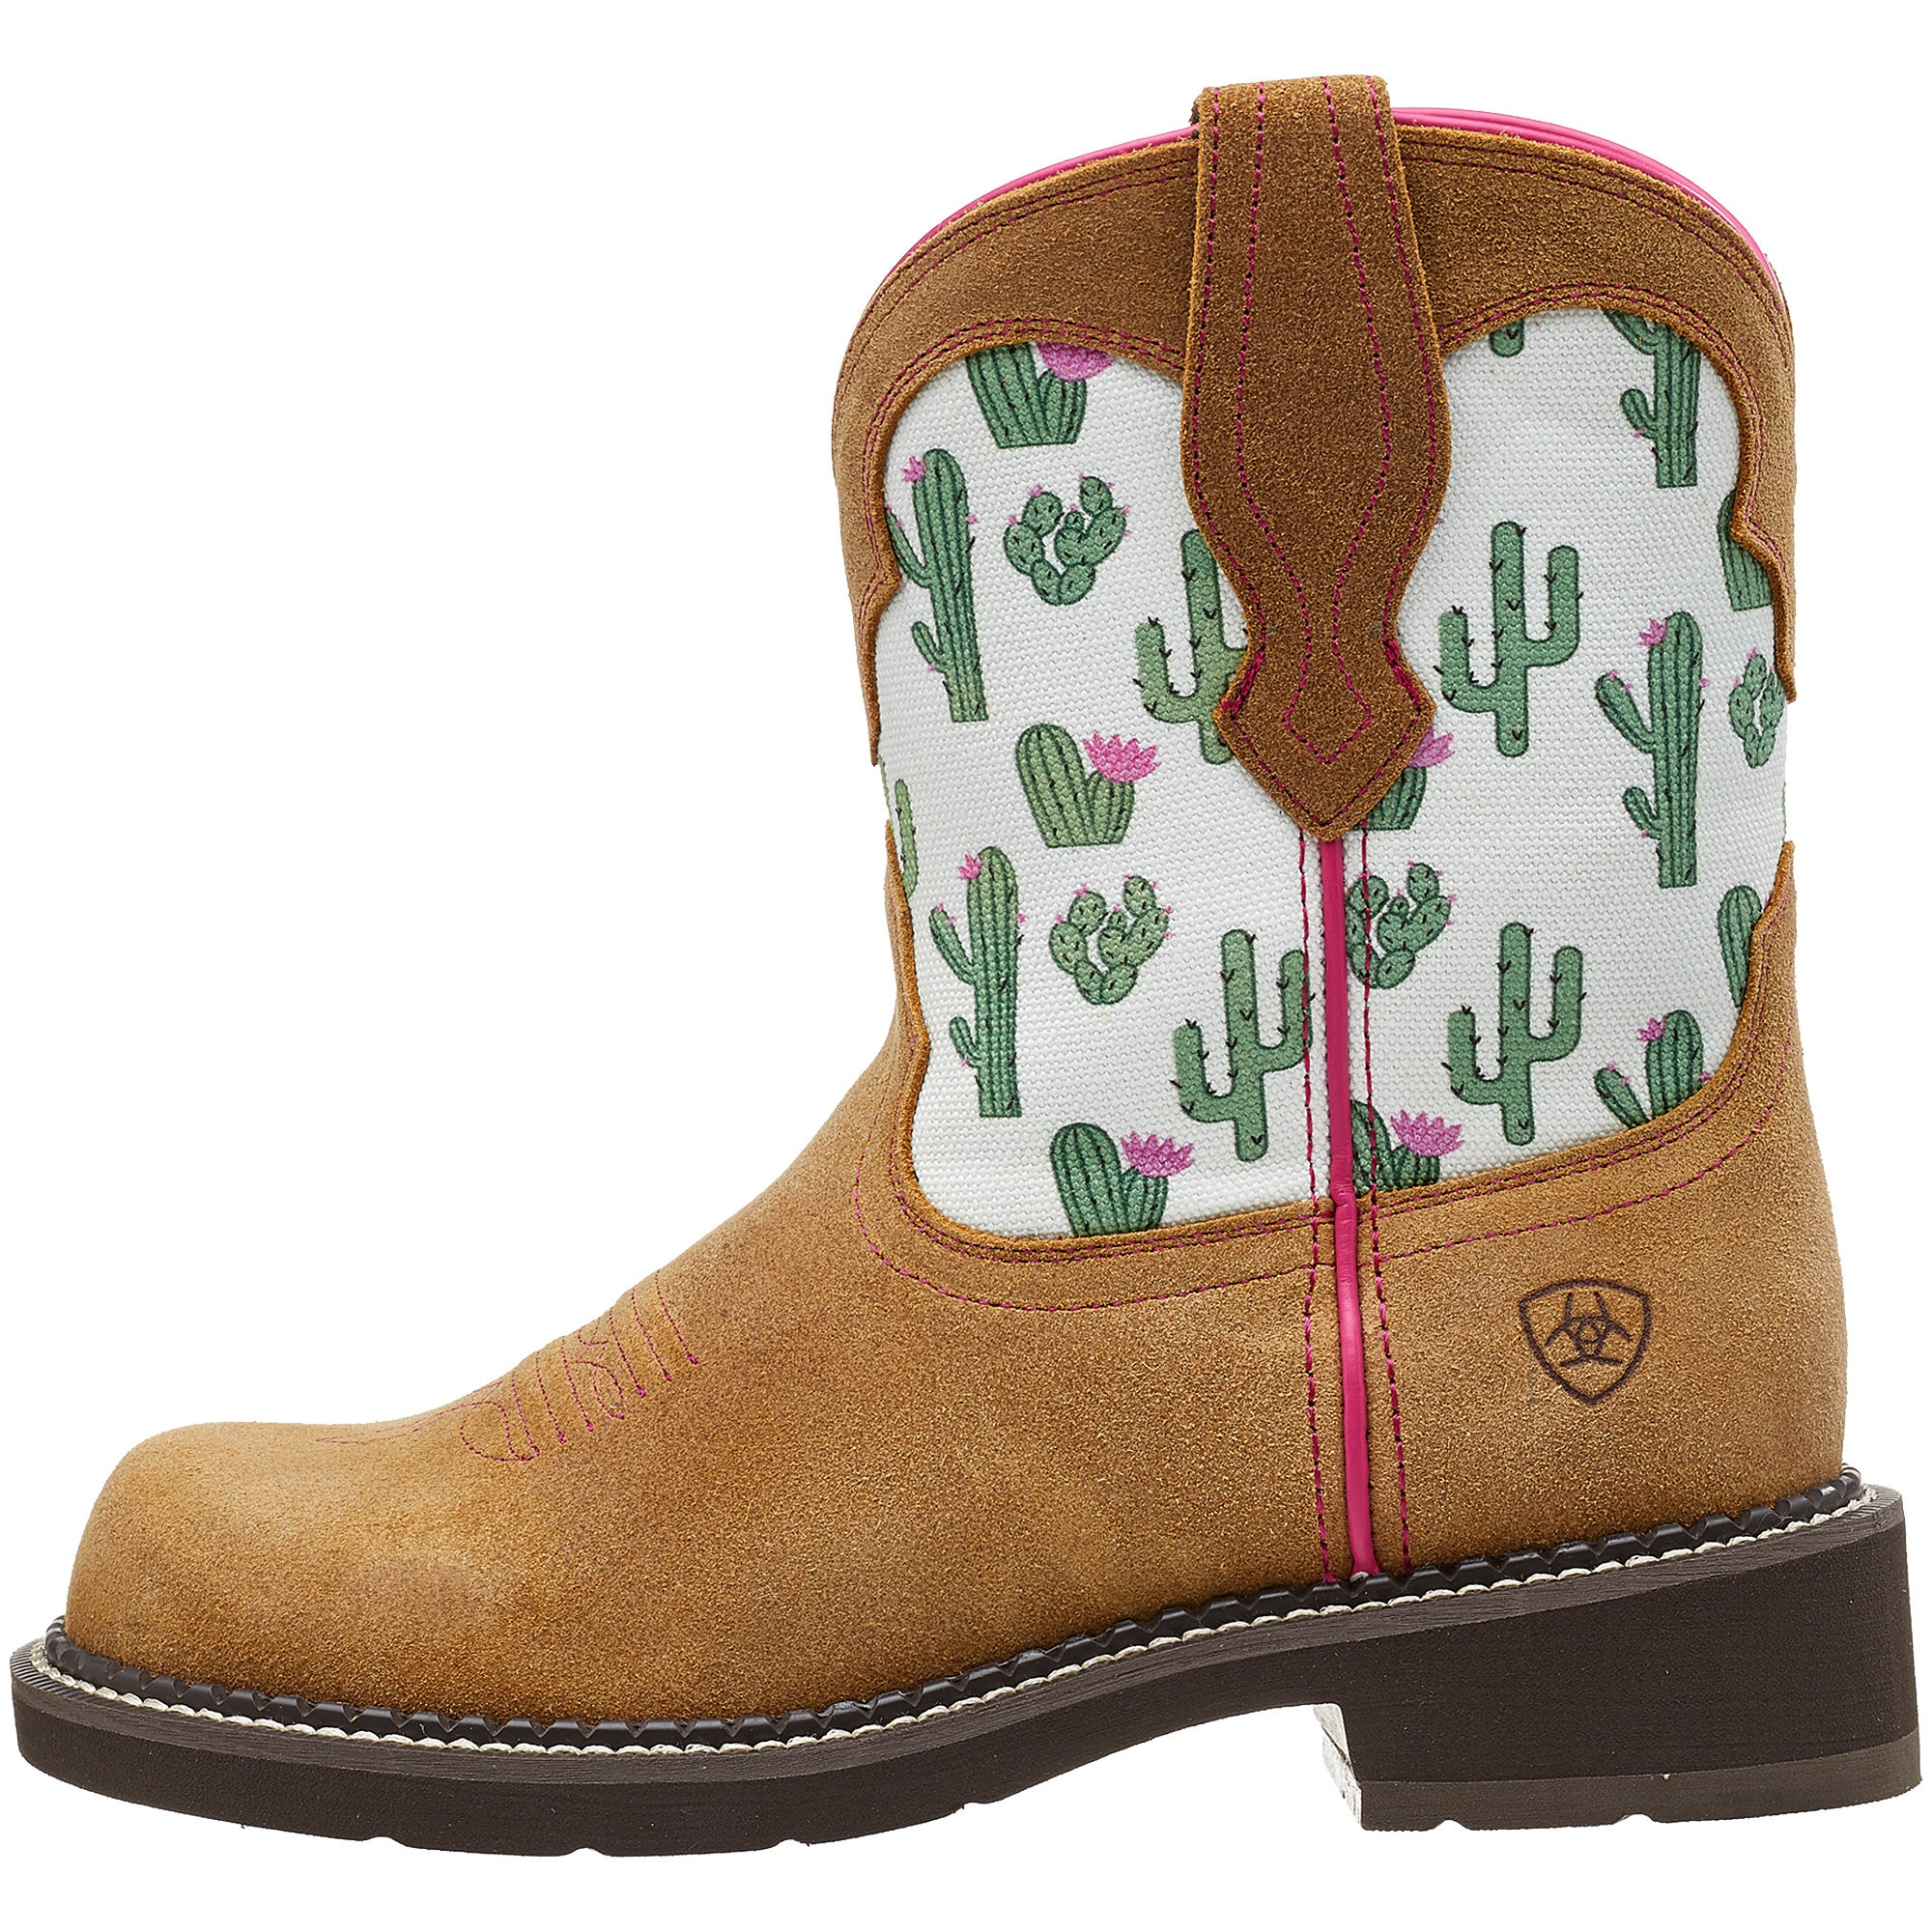 603a100e0dc Ariat Fatbaby Heritage Cactus Women's Cowboy Boots - Riding Warehouse